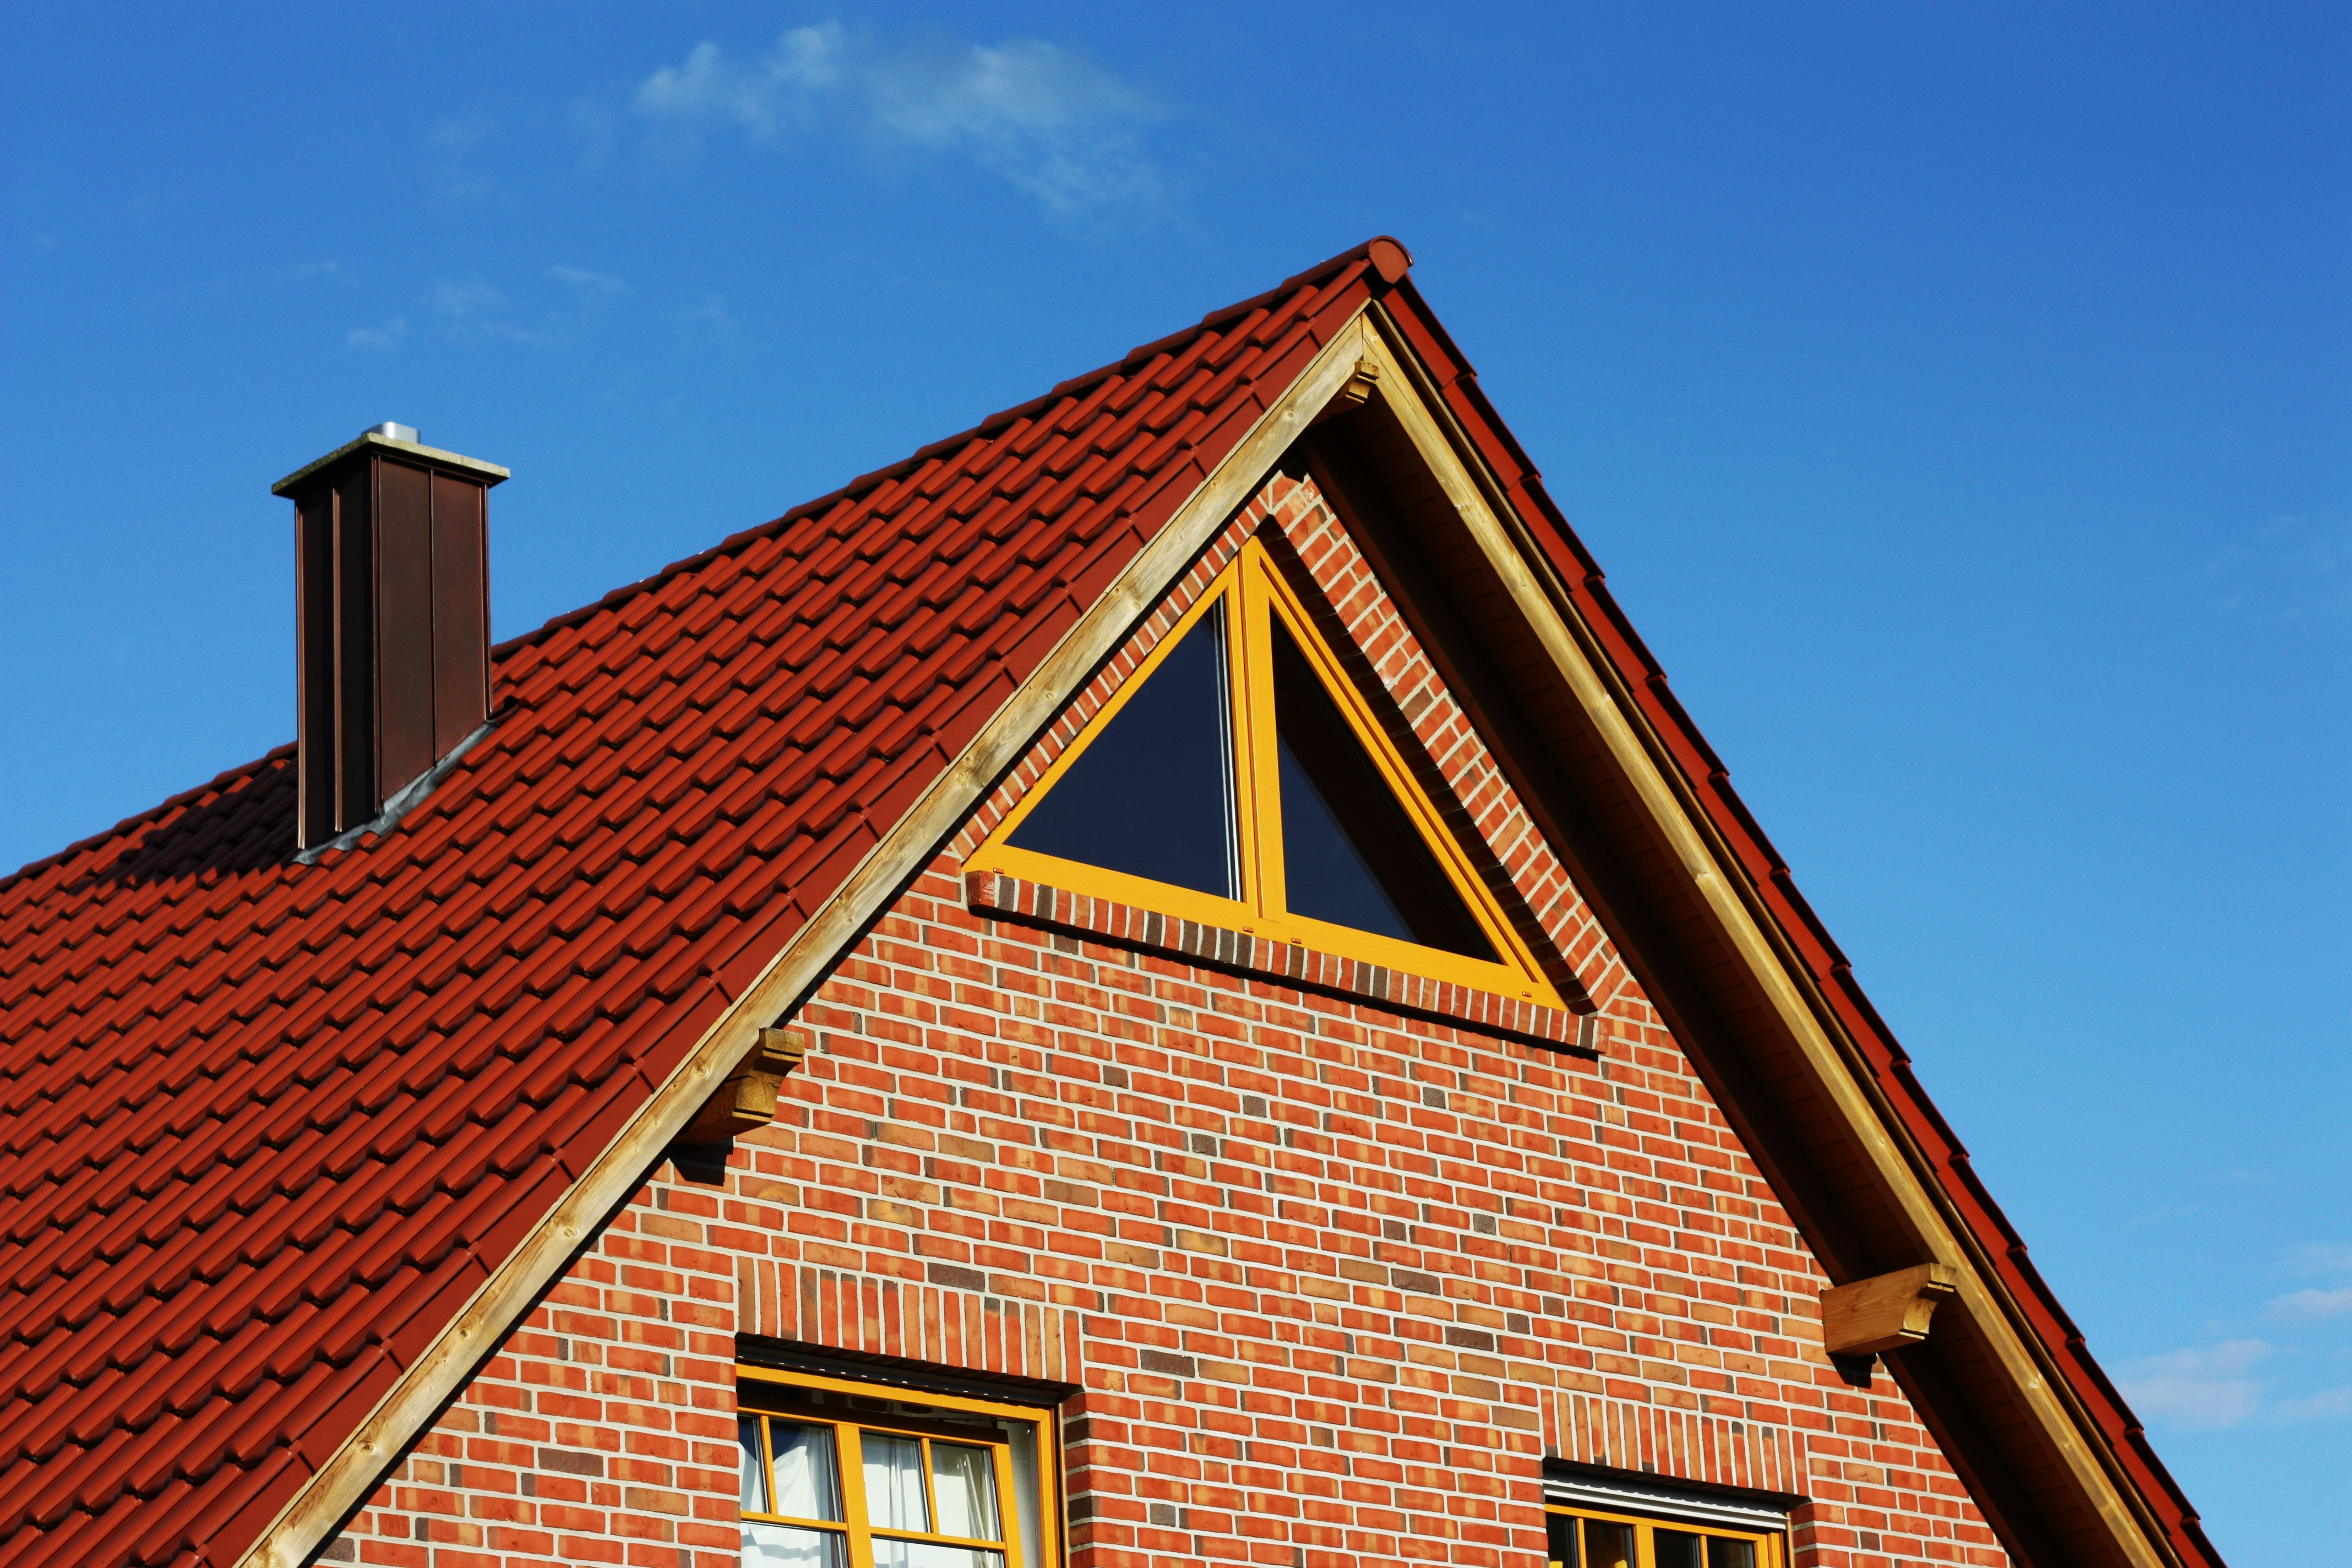 Gable Terracotta Roof | RoofingContractorPittsburgh.com